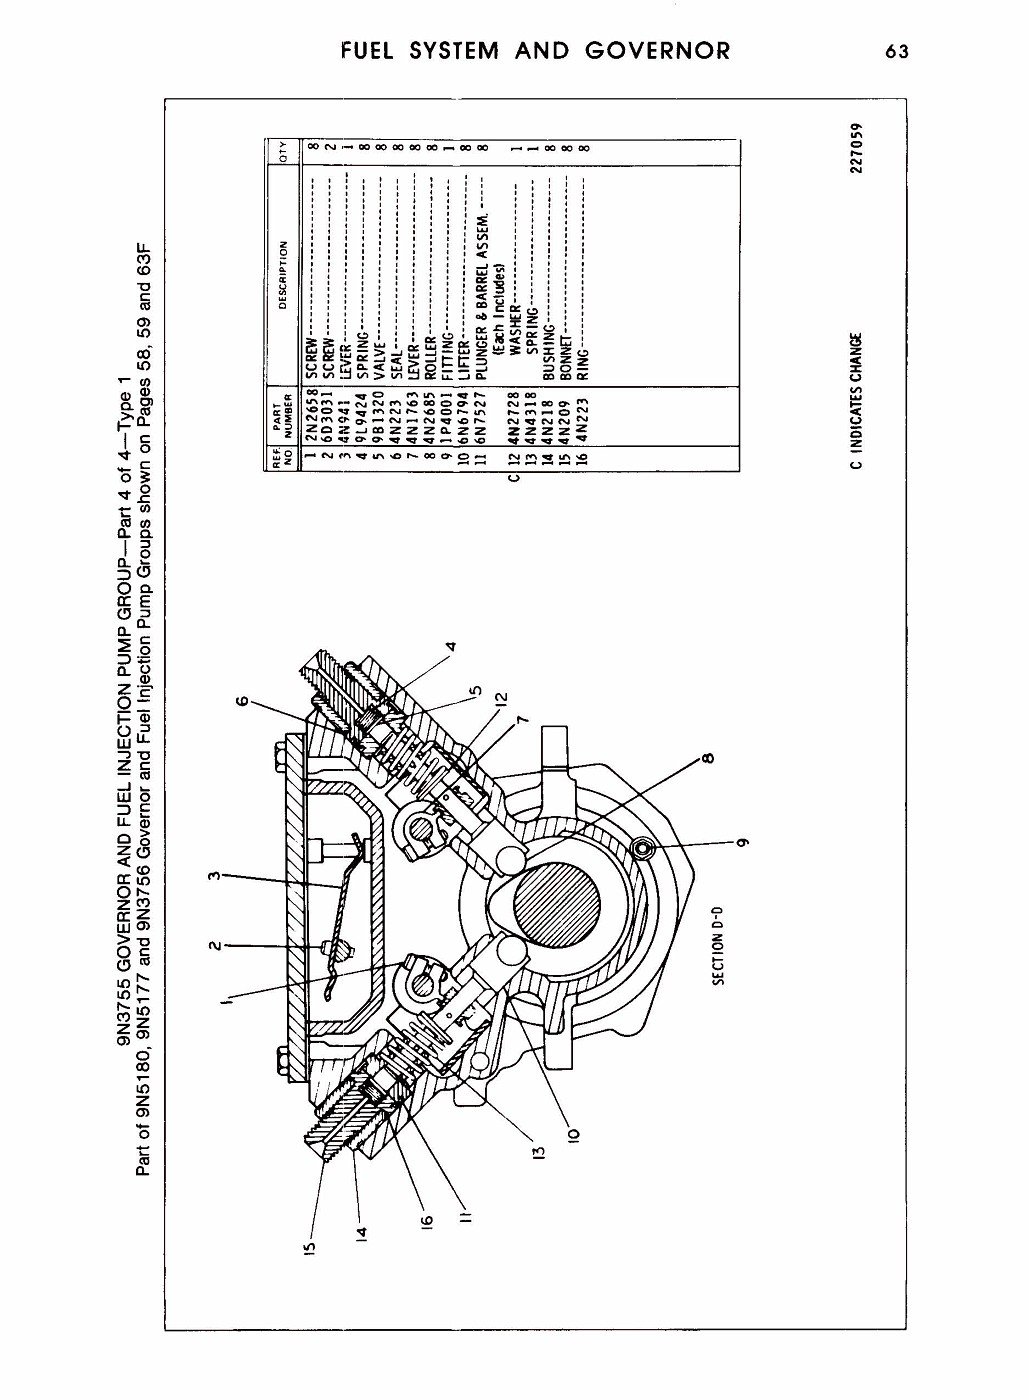 hight resolution of cat 3208 injection pump diagram wiring diagram meta cat 3208 injection pump diagram cat 3208 injection pump diagram cat